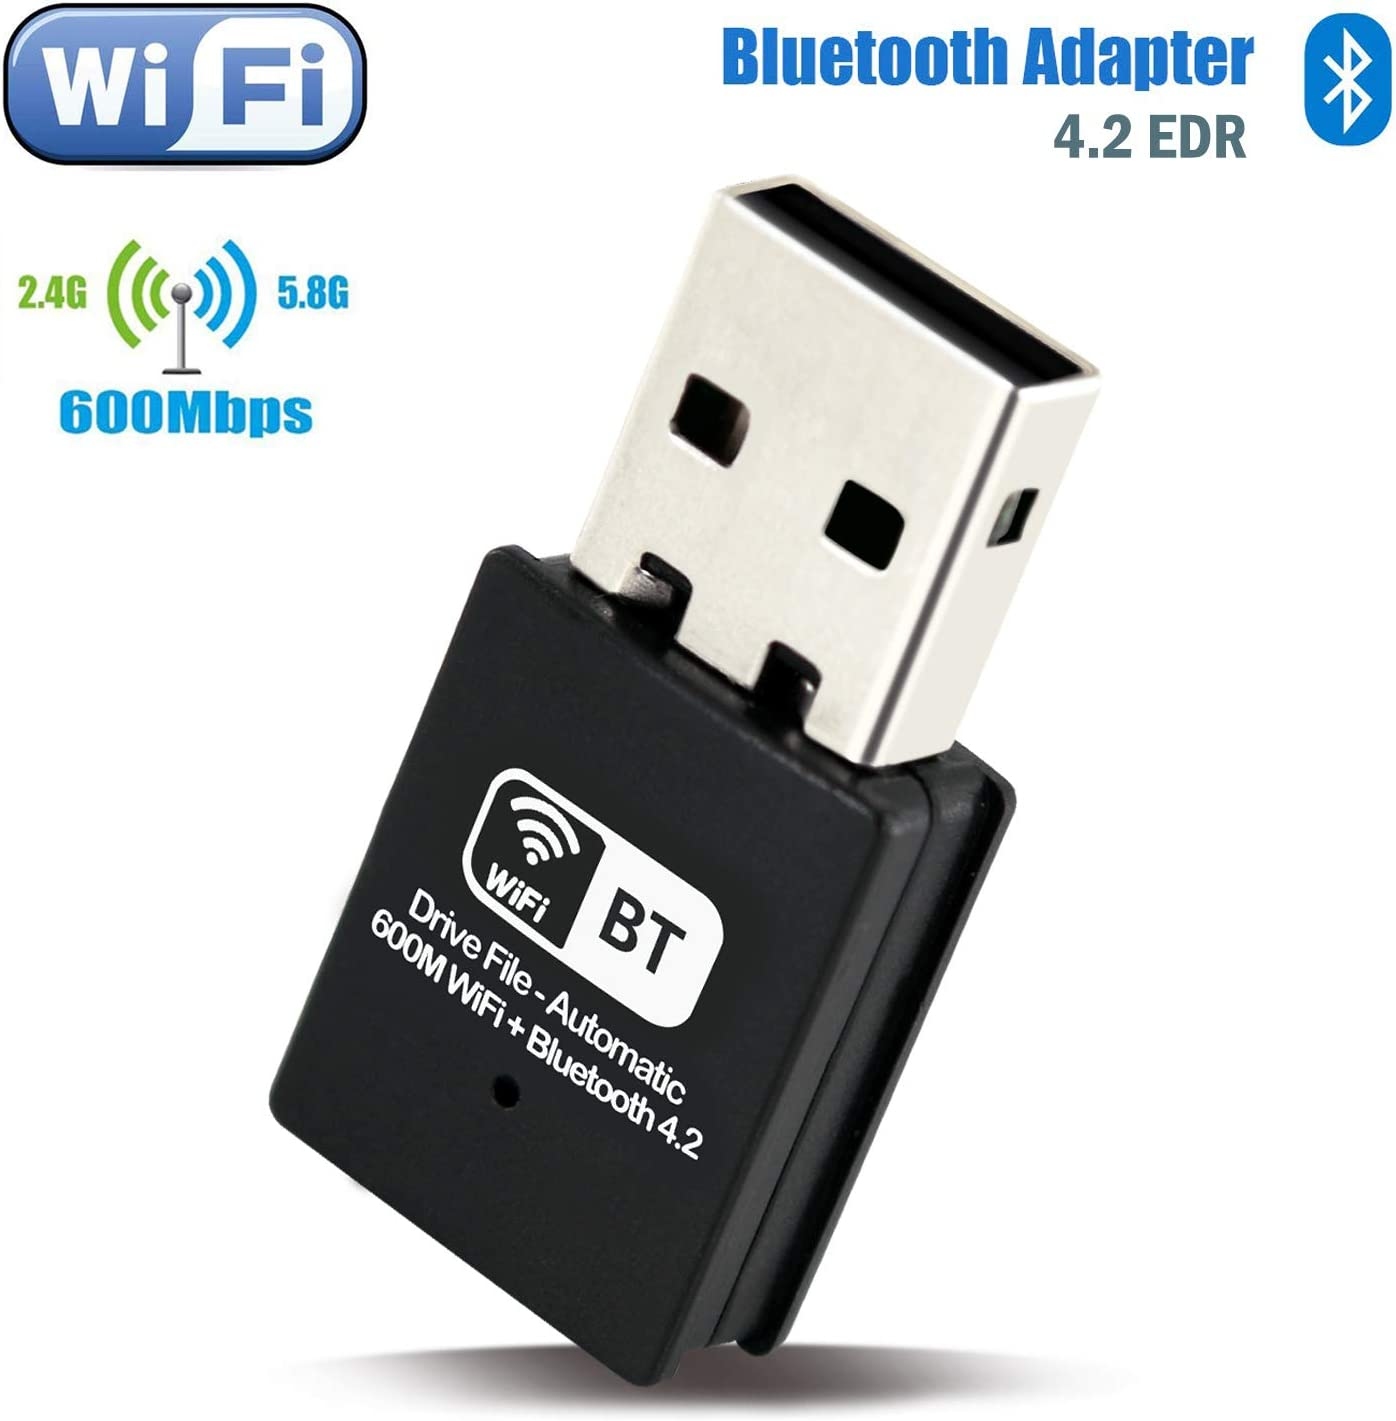 Kocbelle USB WiFi Bluetooth 4.2 Adapter - Wi-Fi Receiver 600 Mbps and Wireless Bluetooth 2-in-1 Dongle, for Windows XP/ 7/ 8/ 10, Mac OS, PC Laptop